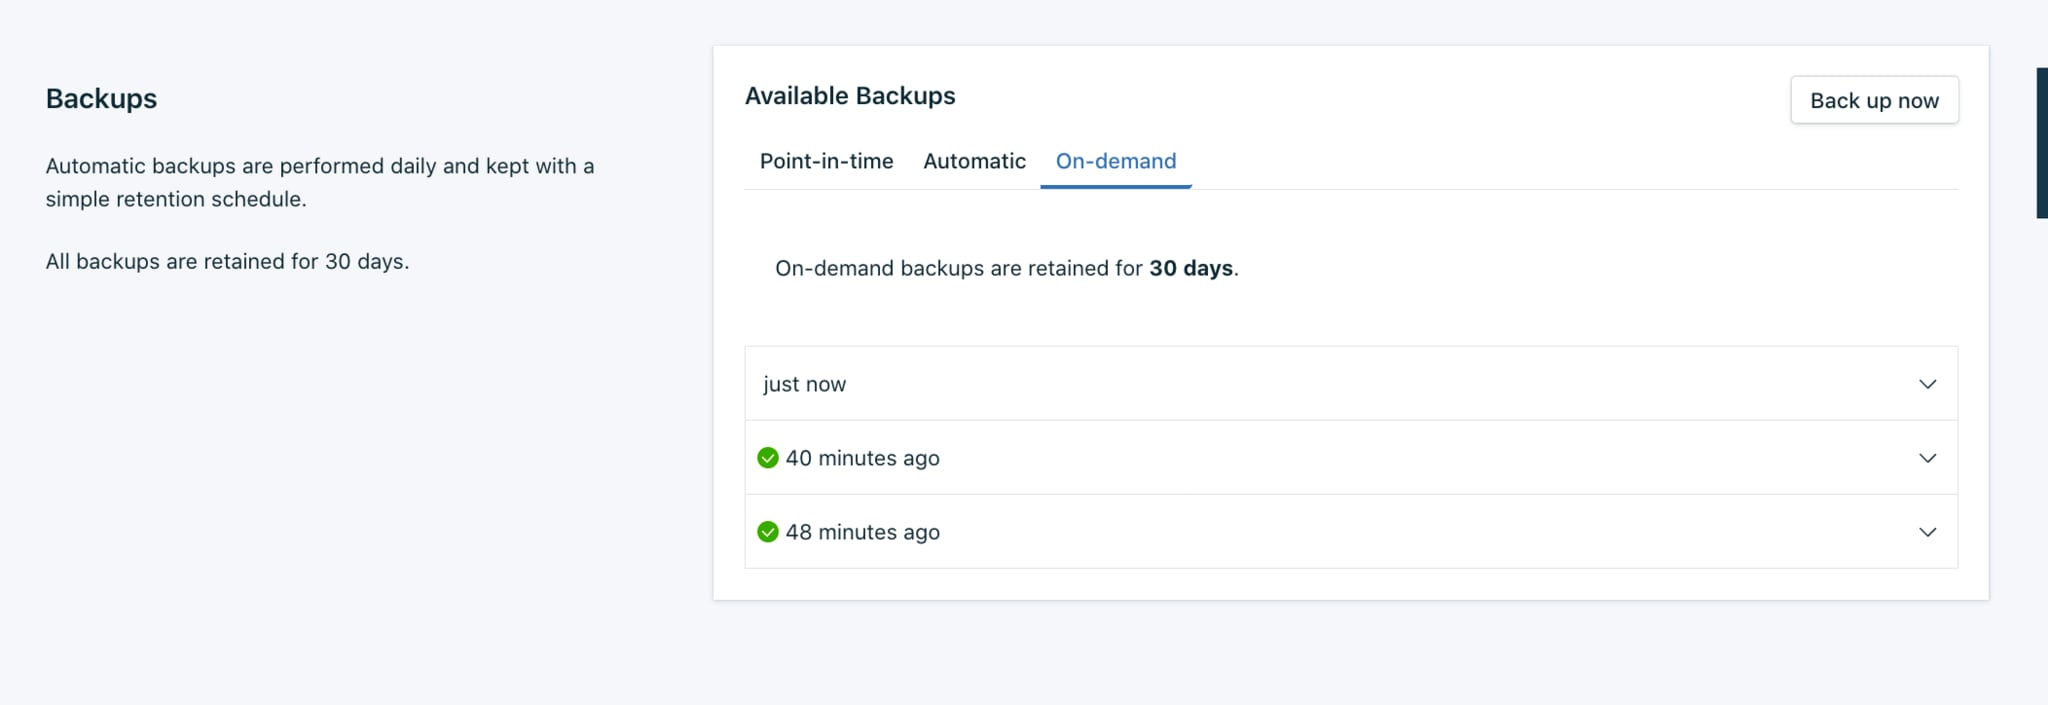 n this example, let's create an on-demand backup of the database so that we have a backup of the latest data. Select the On-demand tab, then click on the Back up now button to start a backup.    Once the backup has been initiated, you will see just now appear in the panel. If you click on that, it will give you the backup ID number only, until the backup has finished being created.